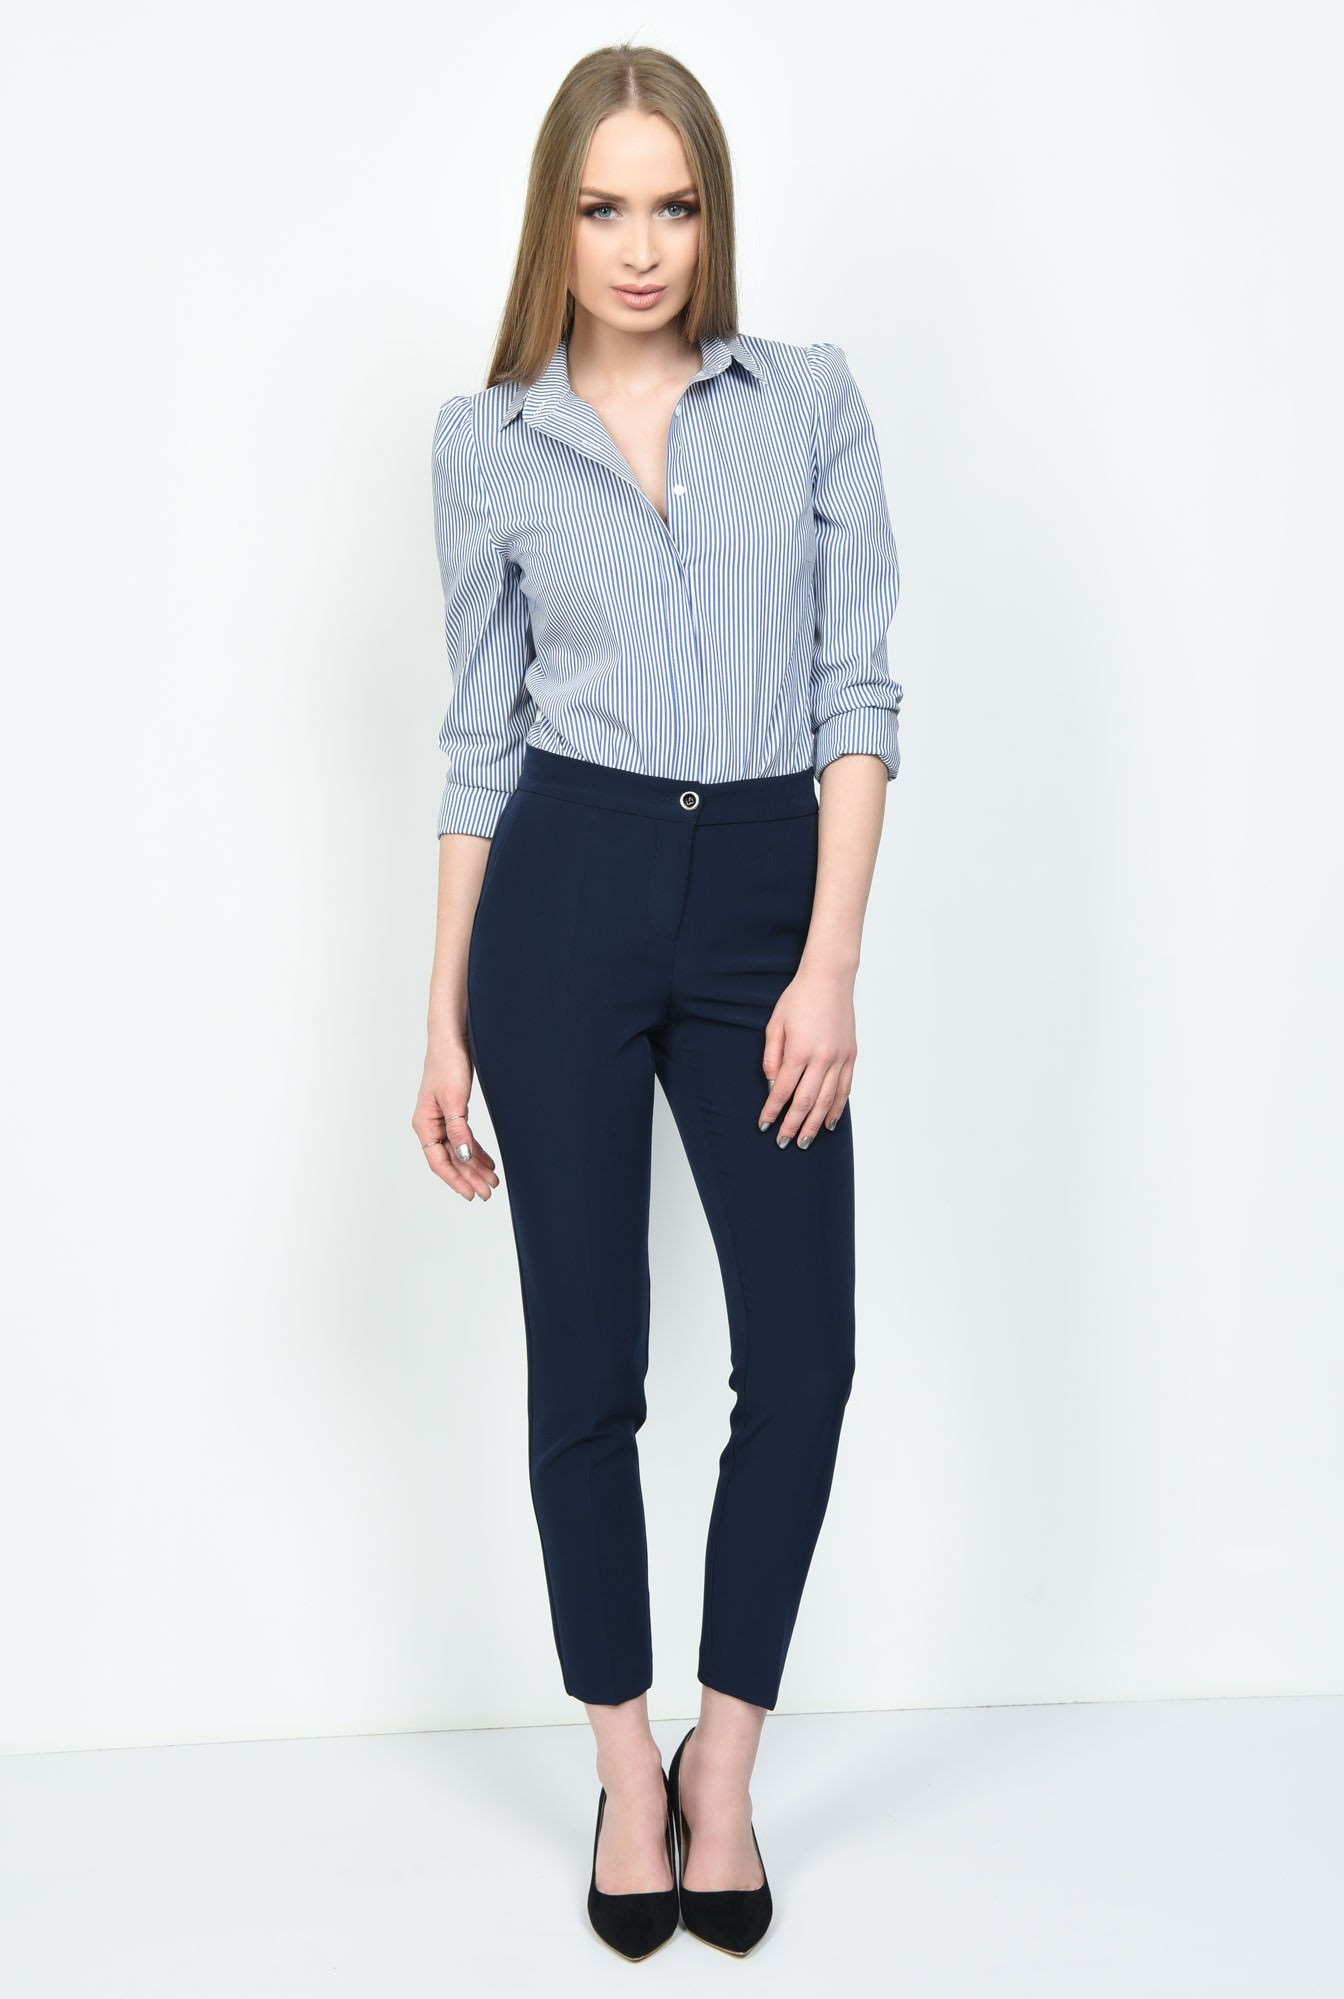 3 - PANTALON OFFICE CONIC PT 133-BLEUMARIN